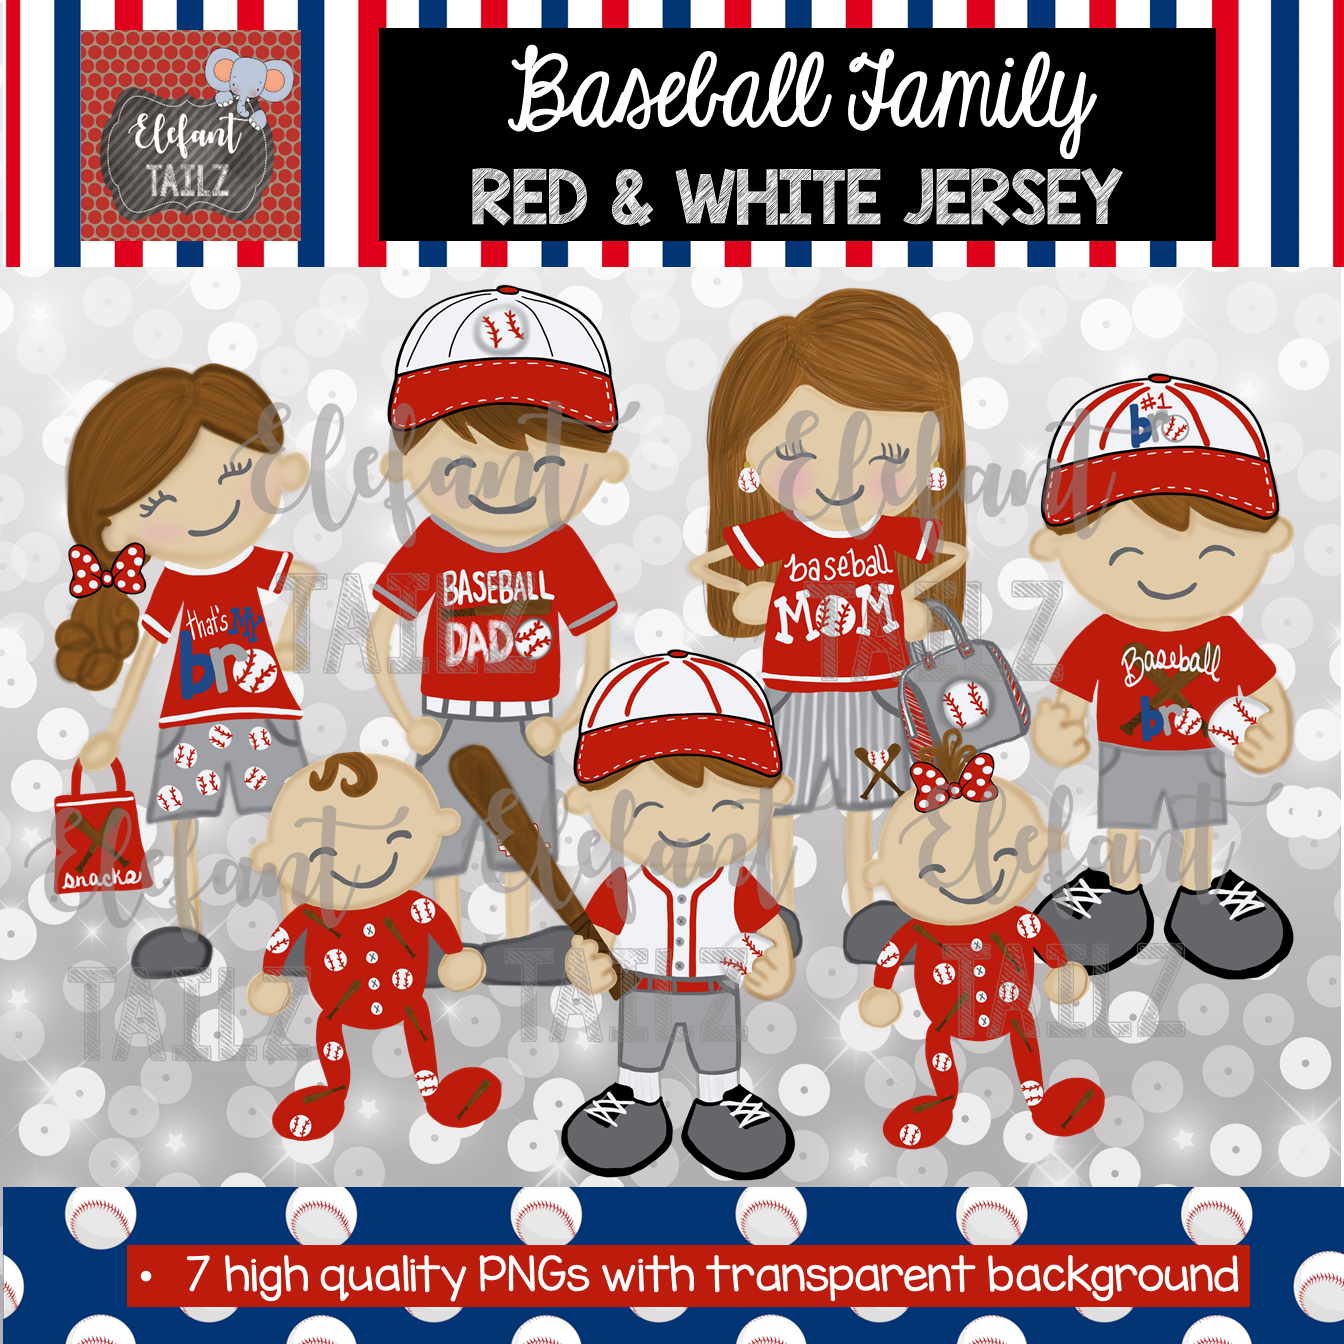 Baseball Family - Brown Hair - Red & White Jersey